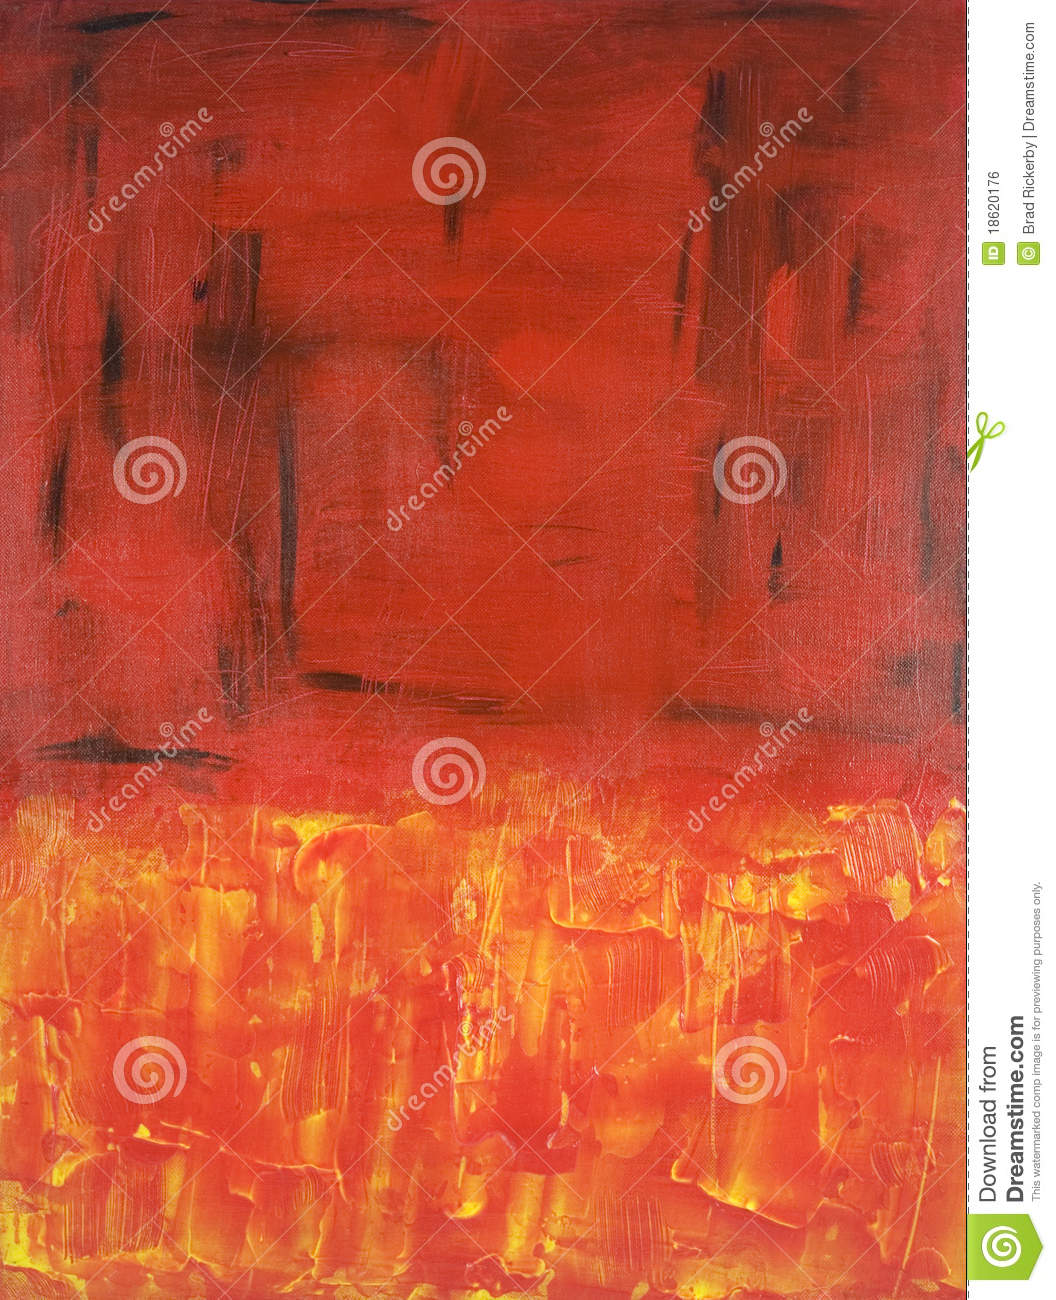 Abstract Expressionist painting in Red